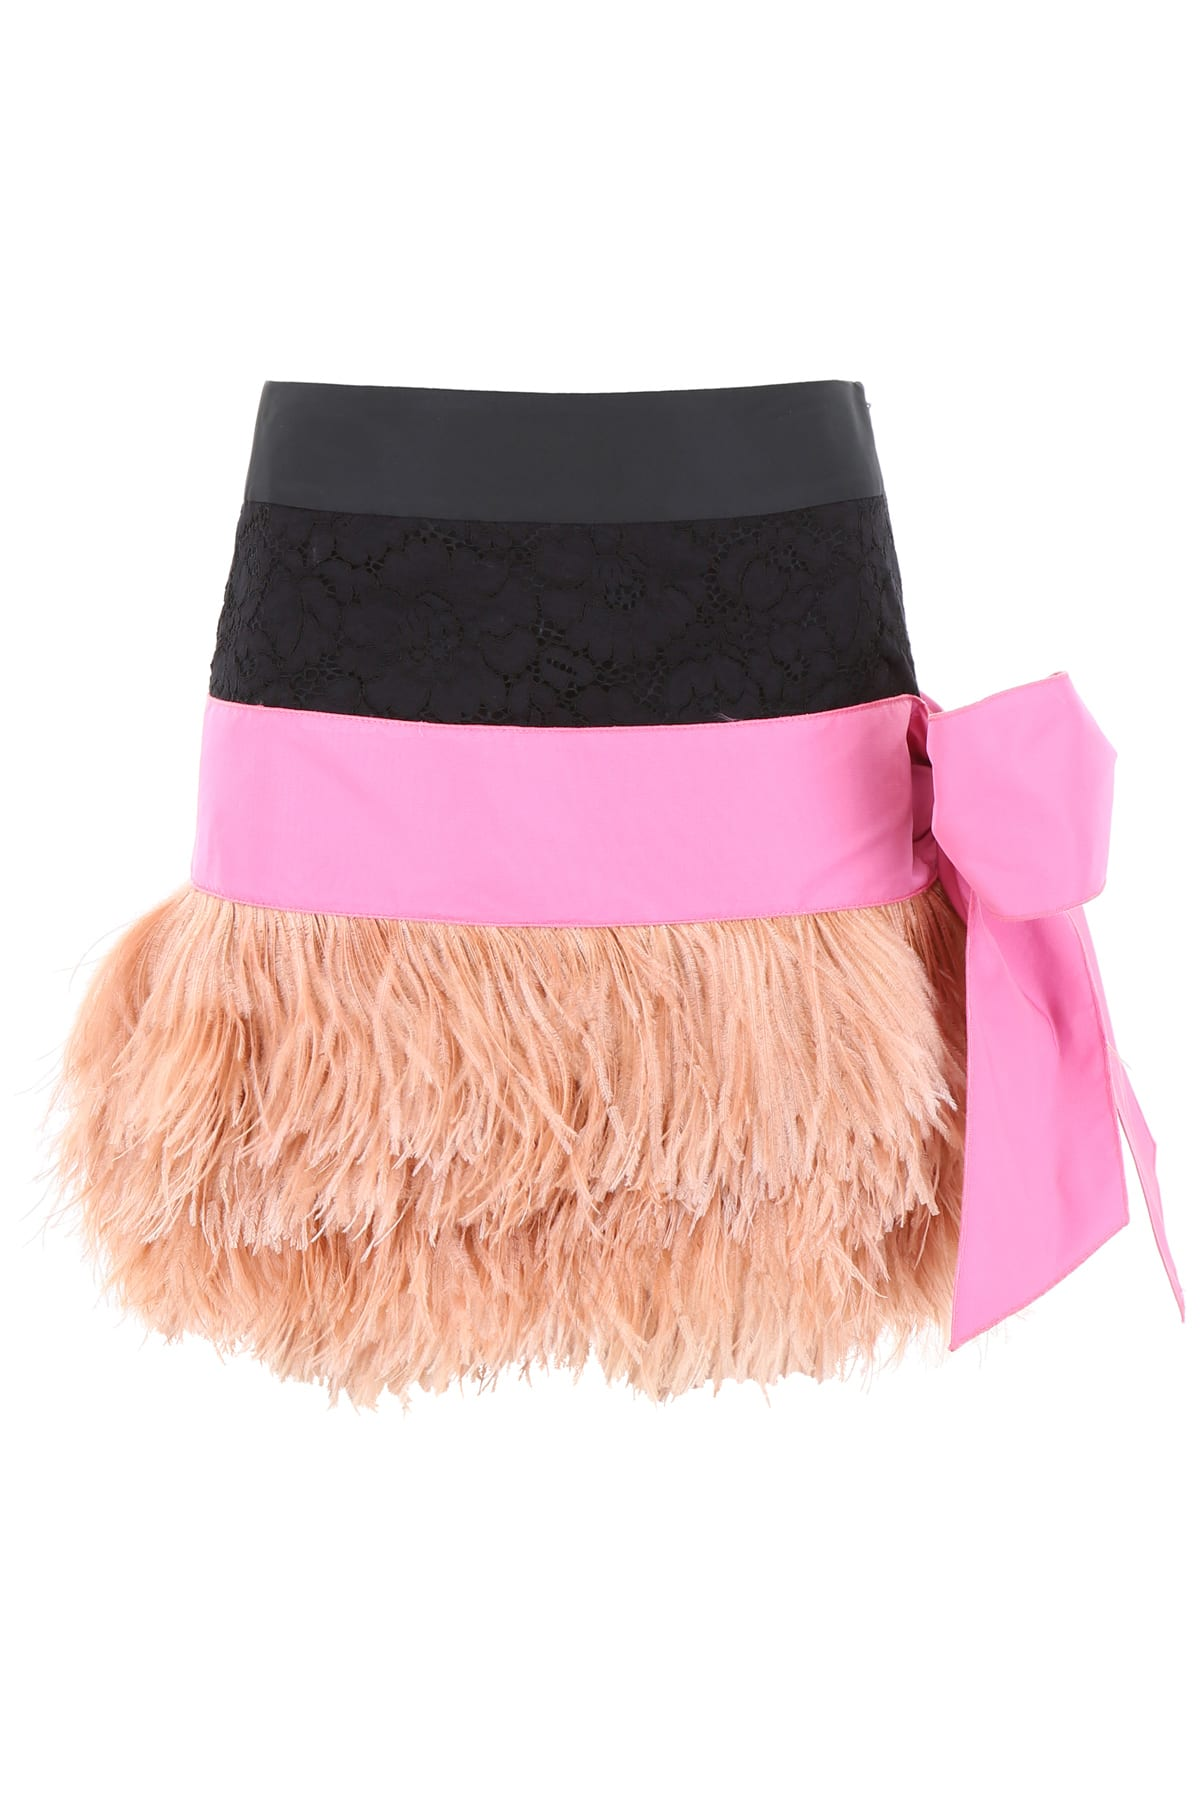 N.21 Mini Skirt With Feathers